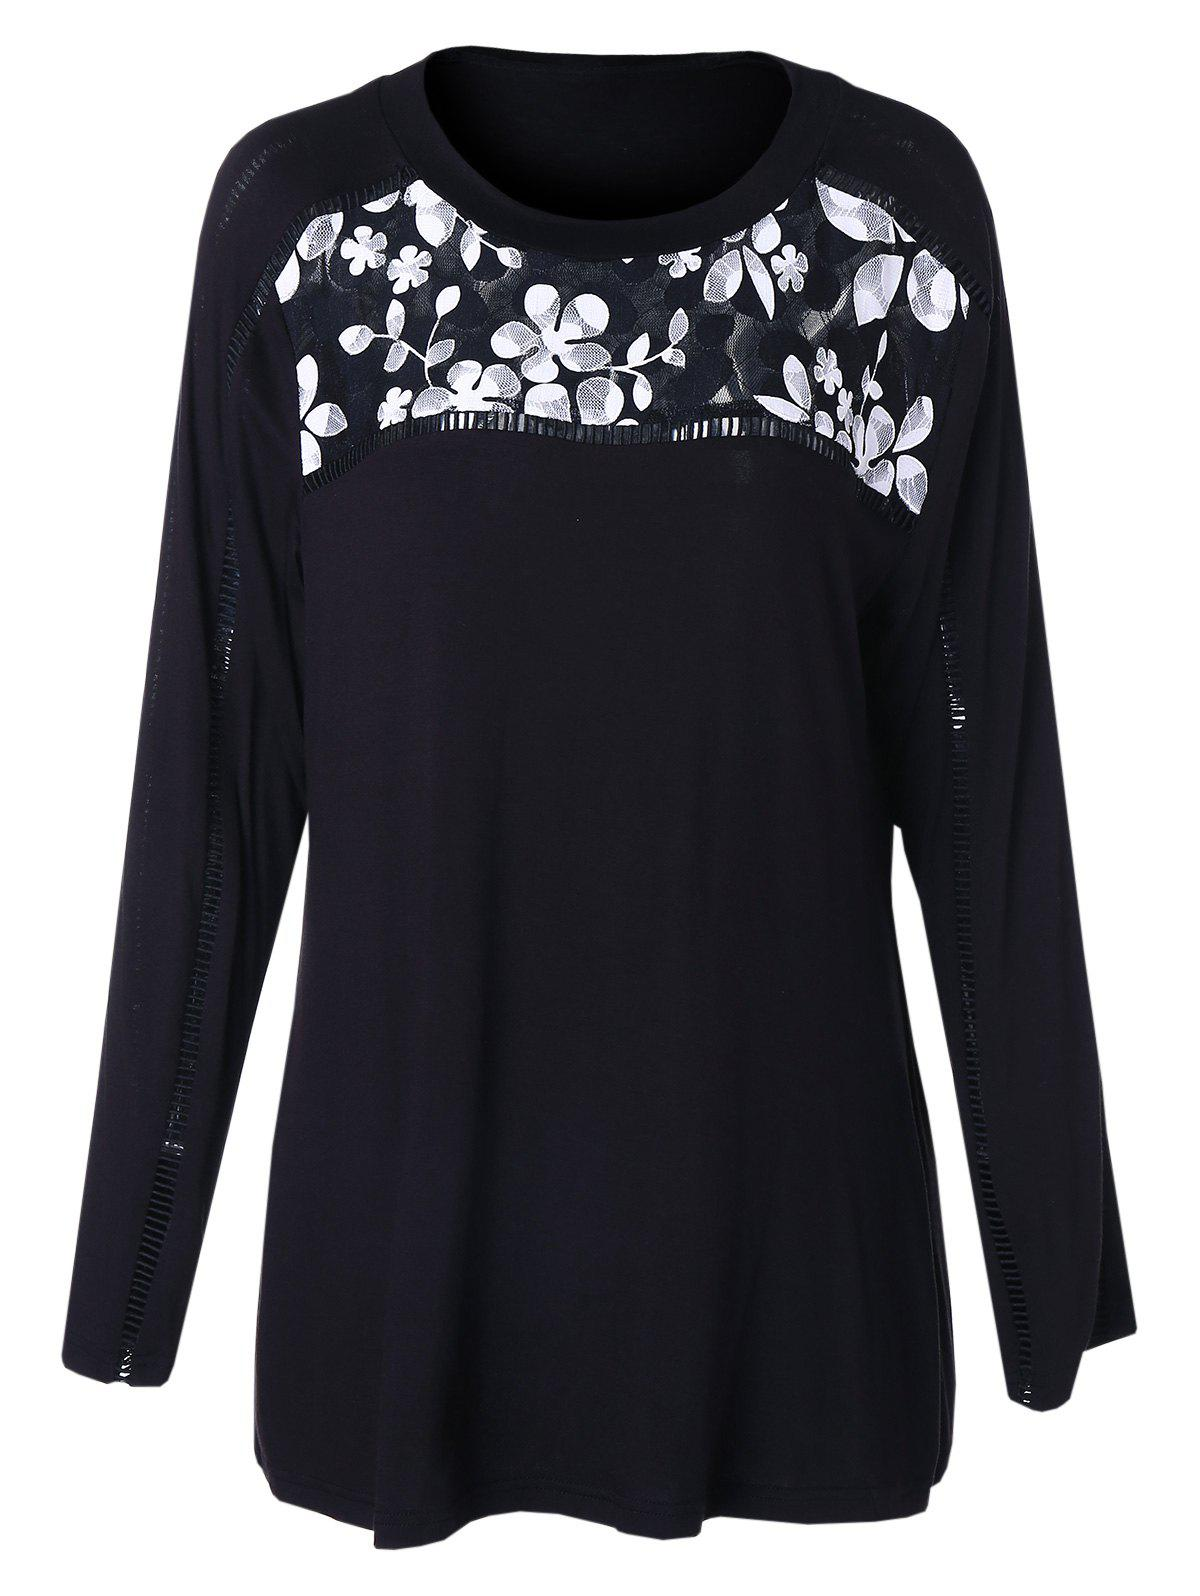 Plus Size Long Sleeves Lace Panel T-shirt фото